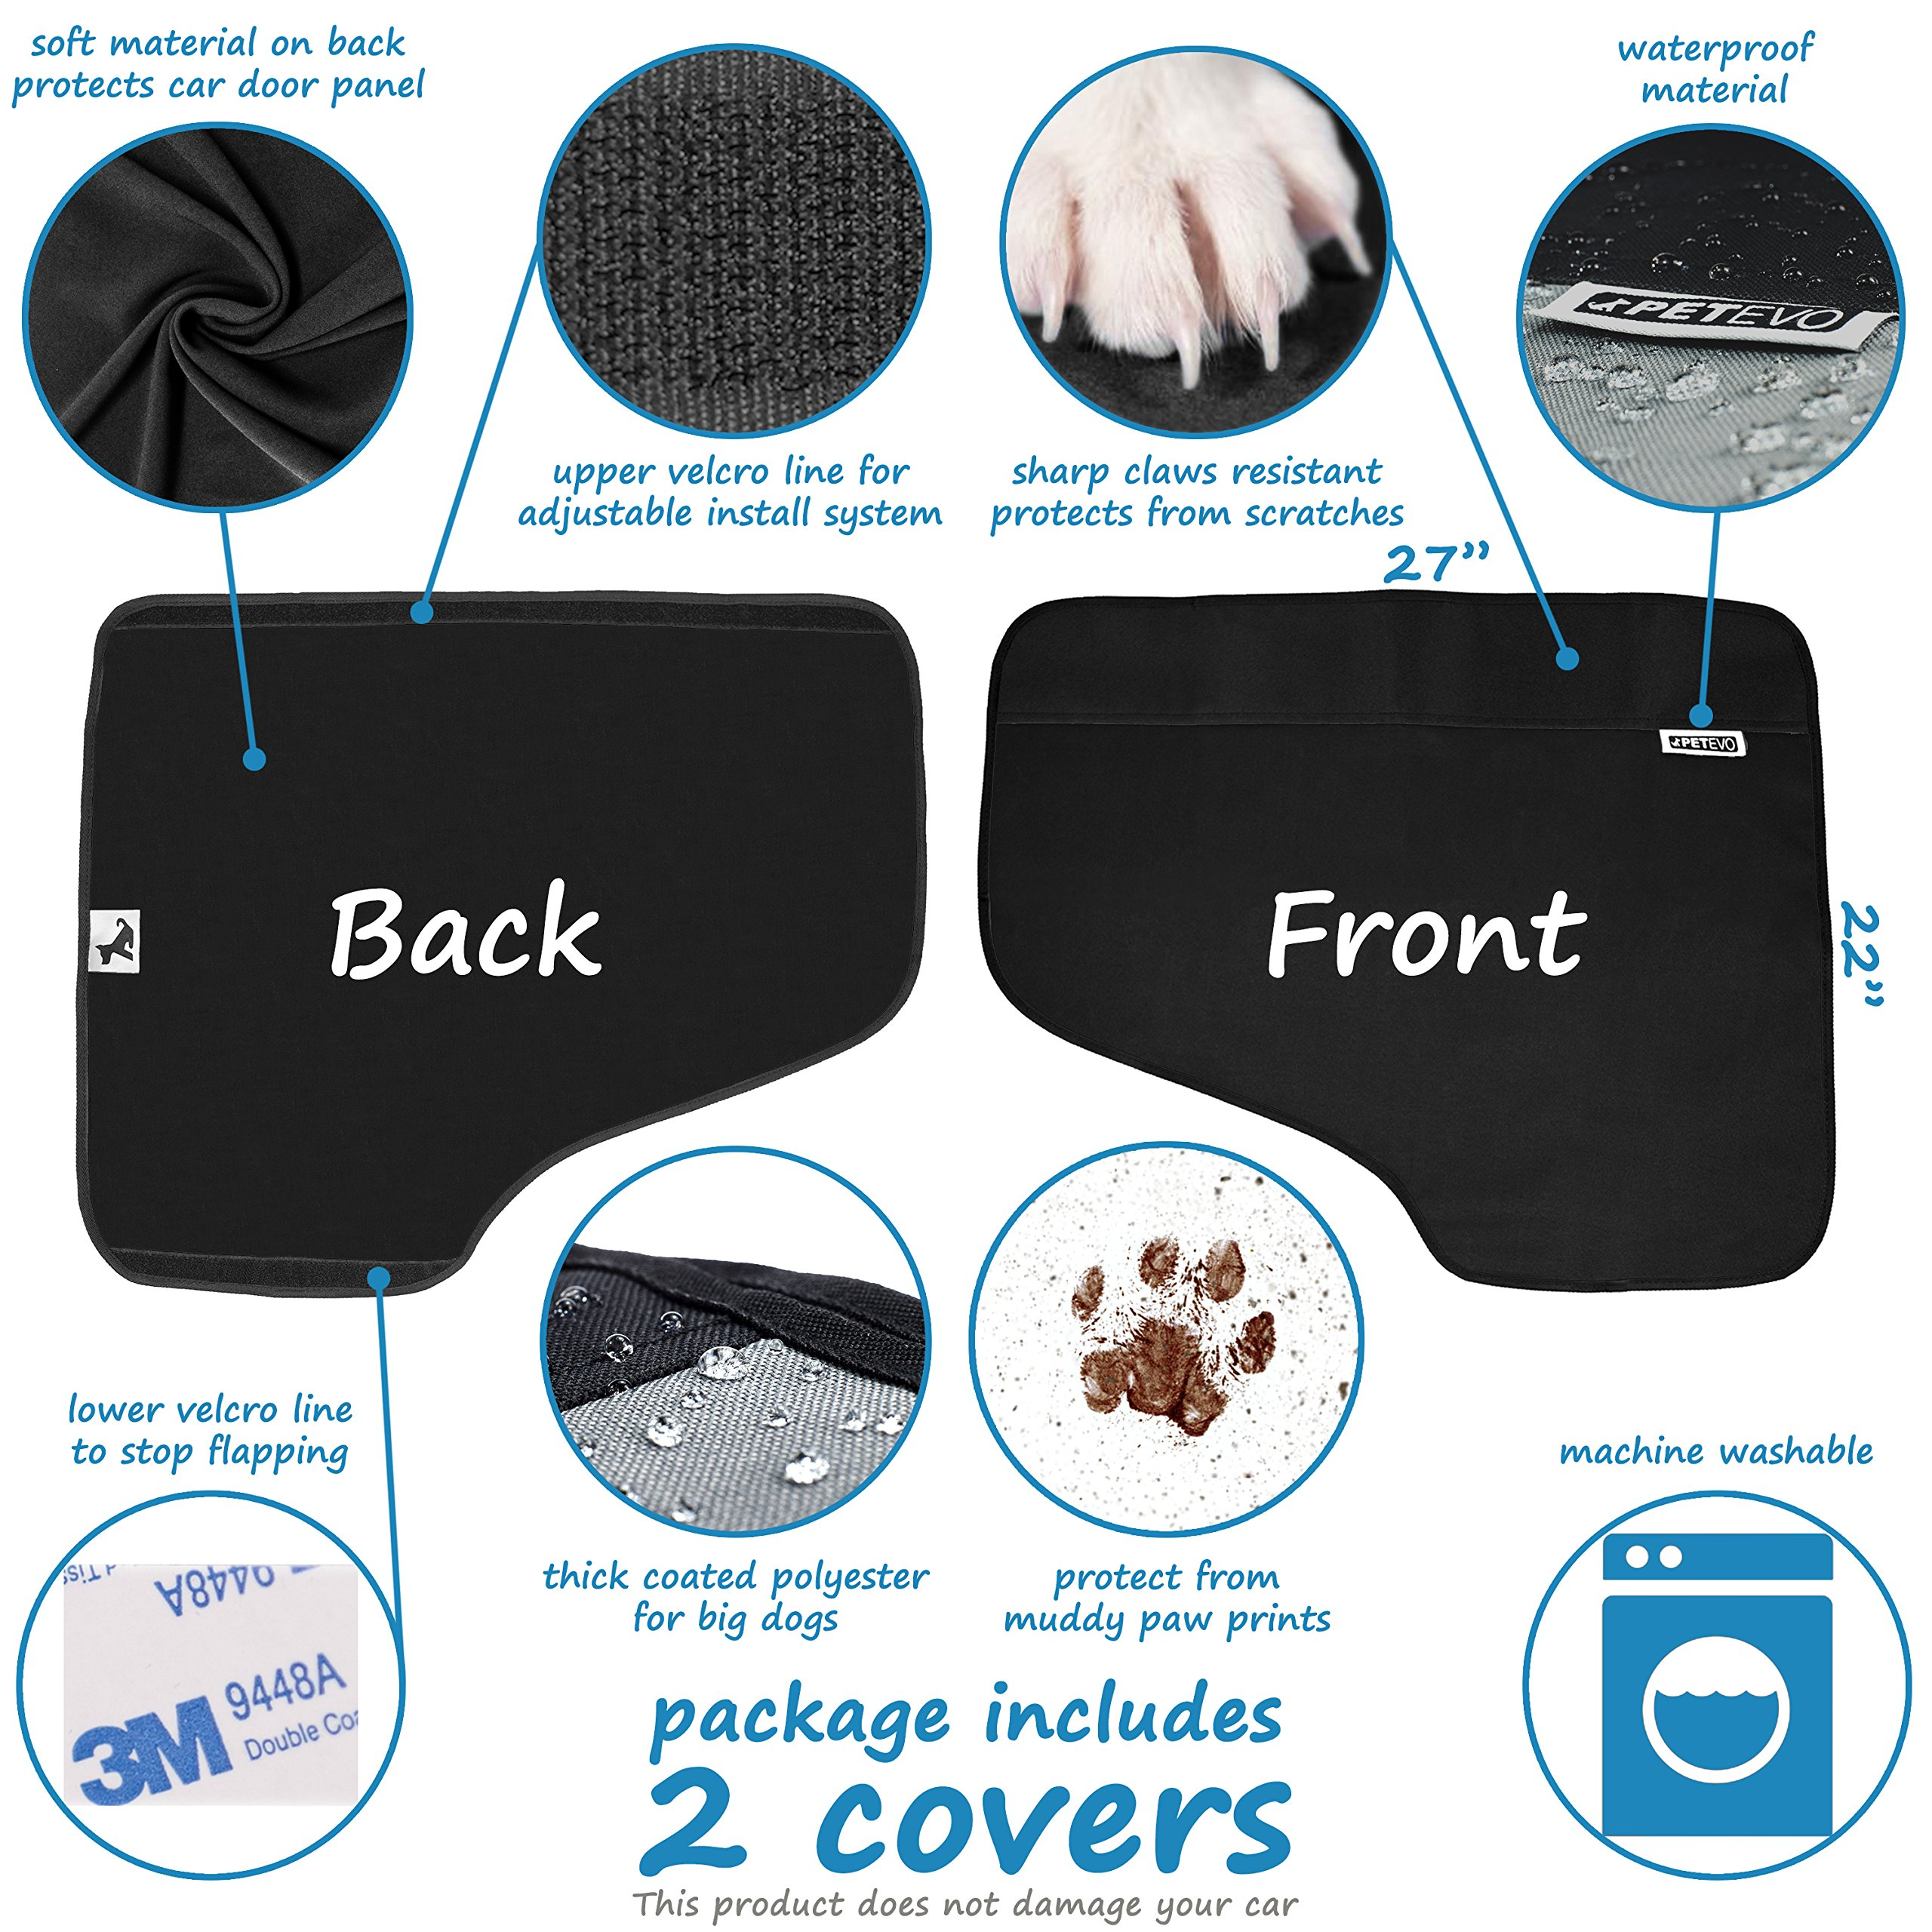 Pet Car Door Protector for Dogs   Interior Cover Guard Vehicle Back Door Protection from Pets Scratch Drooling Nails Large Safe No Slip Velcro Stick for Side Doors PetEvo by PetEvo (Image #4)